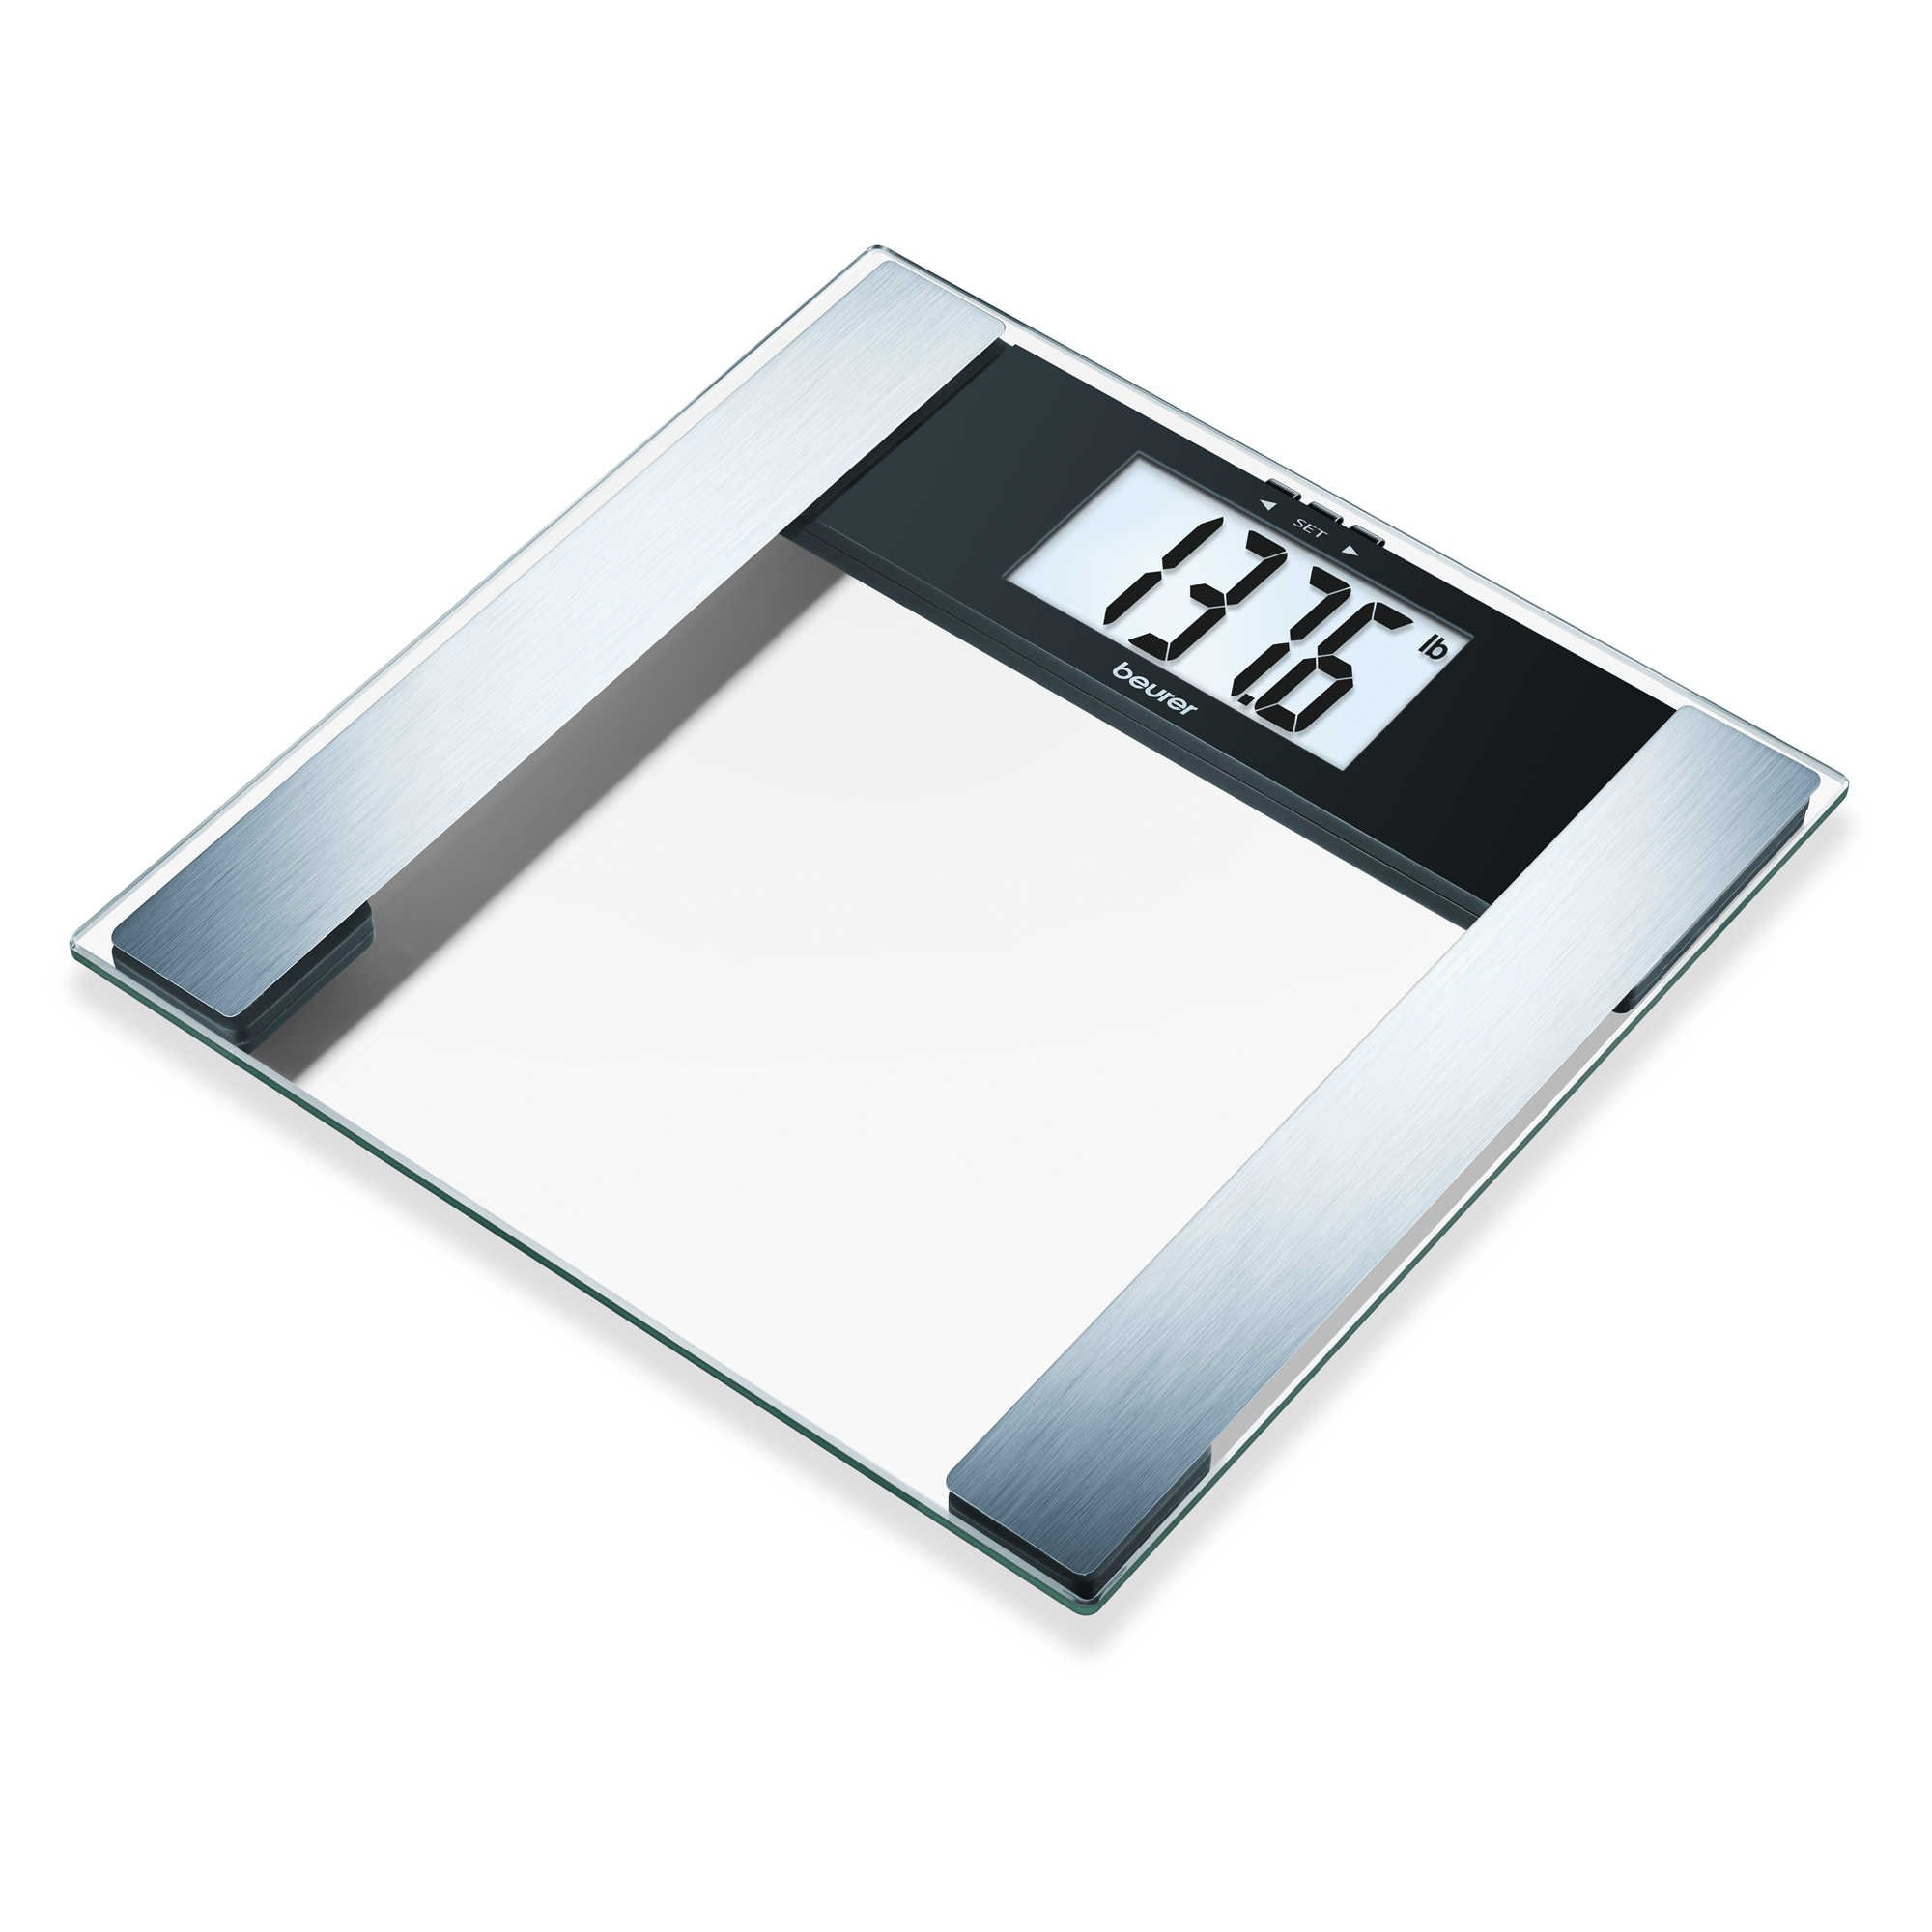 Beurer Glass Body Analysis Scale Measures Weight, Fat, Water and Muscle Percentages, BG17